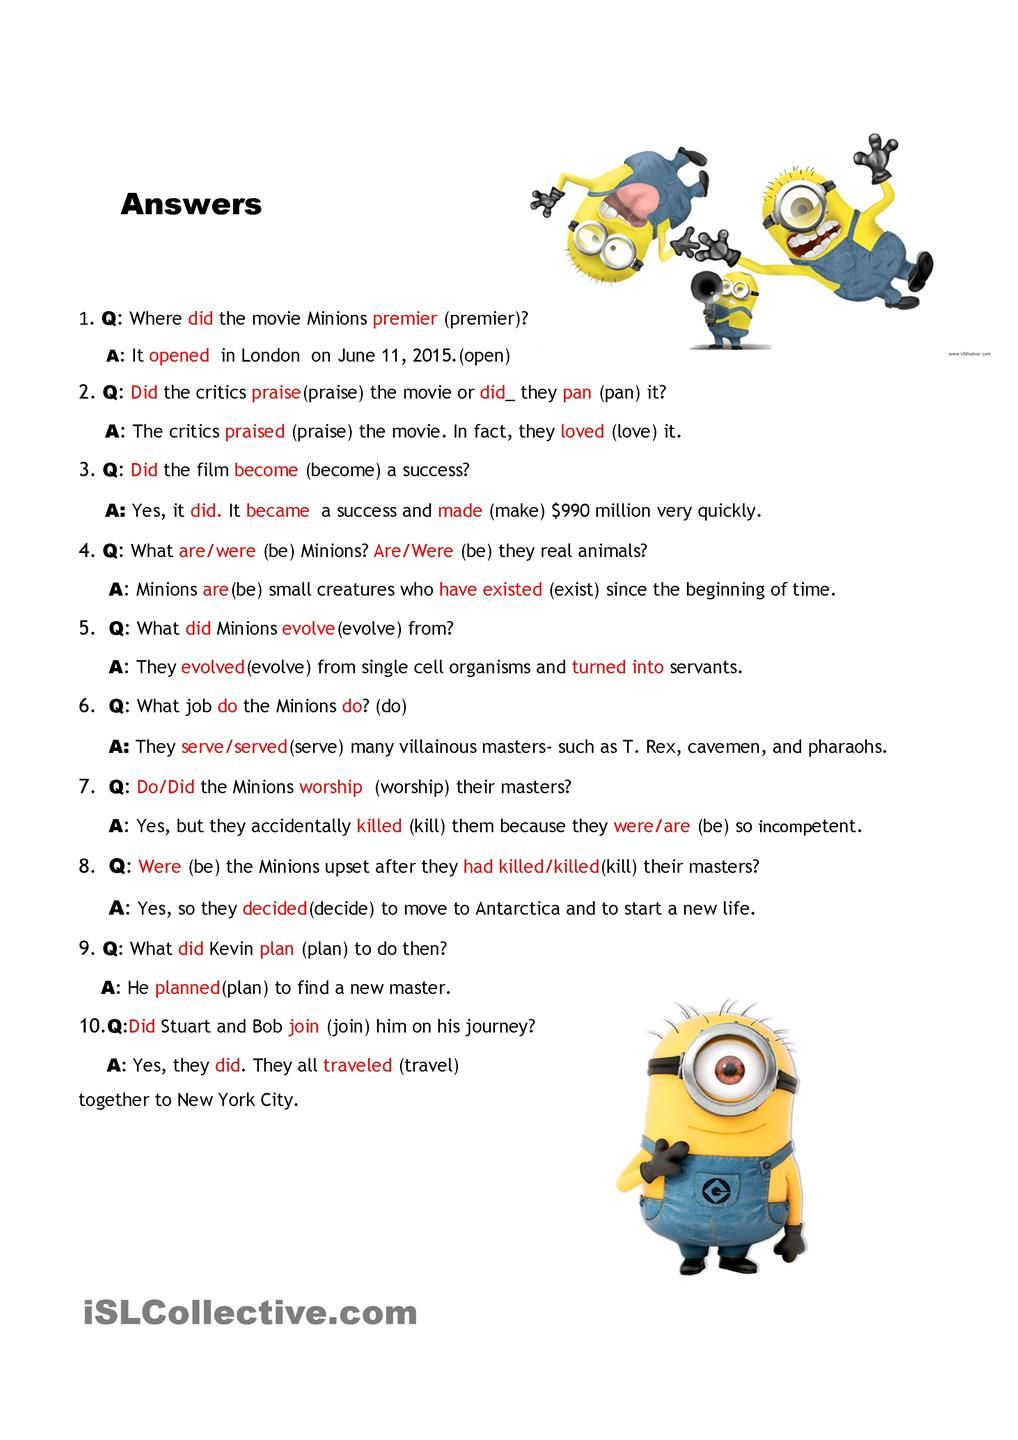 Interview the Minions with KEY worksheet - Free ESL printable worksheets  made by teachers